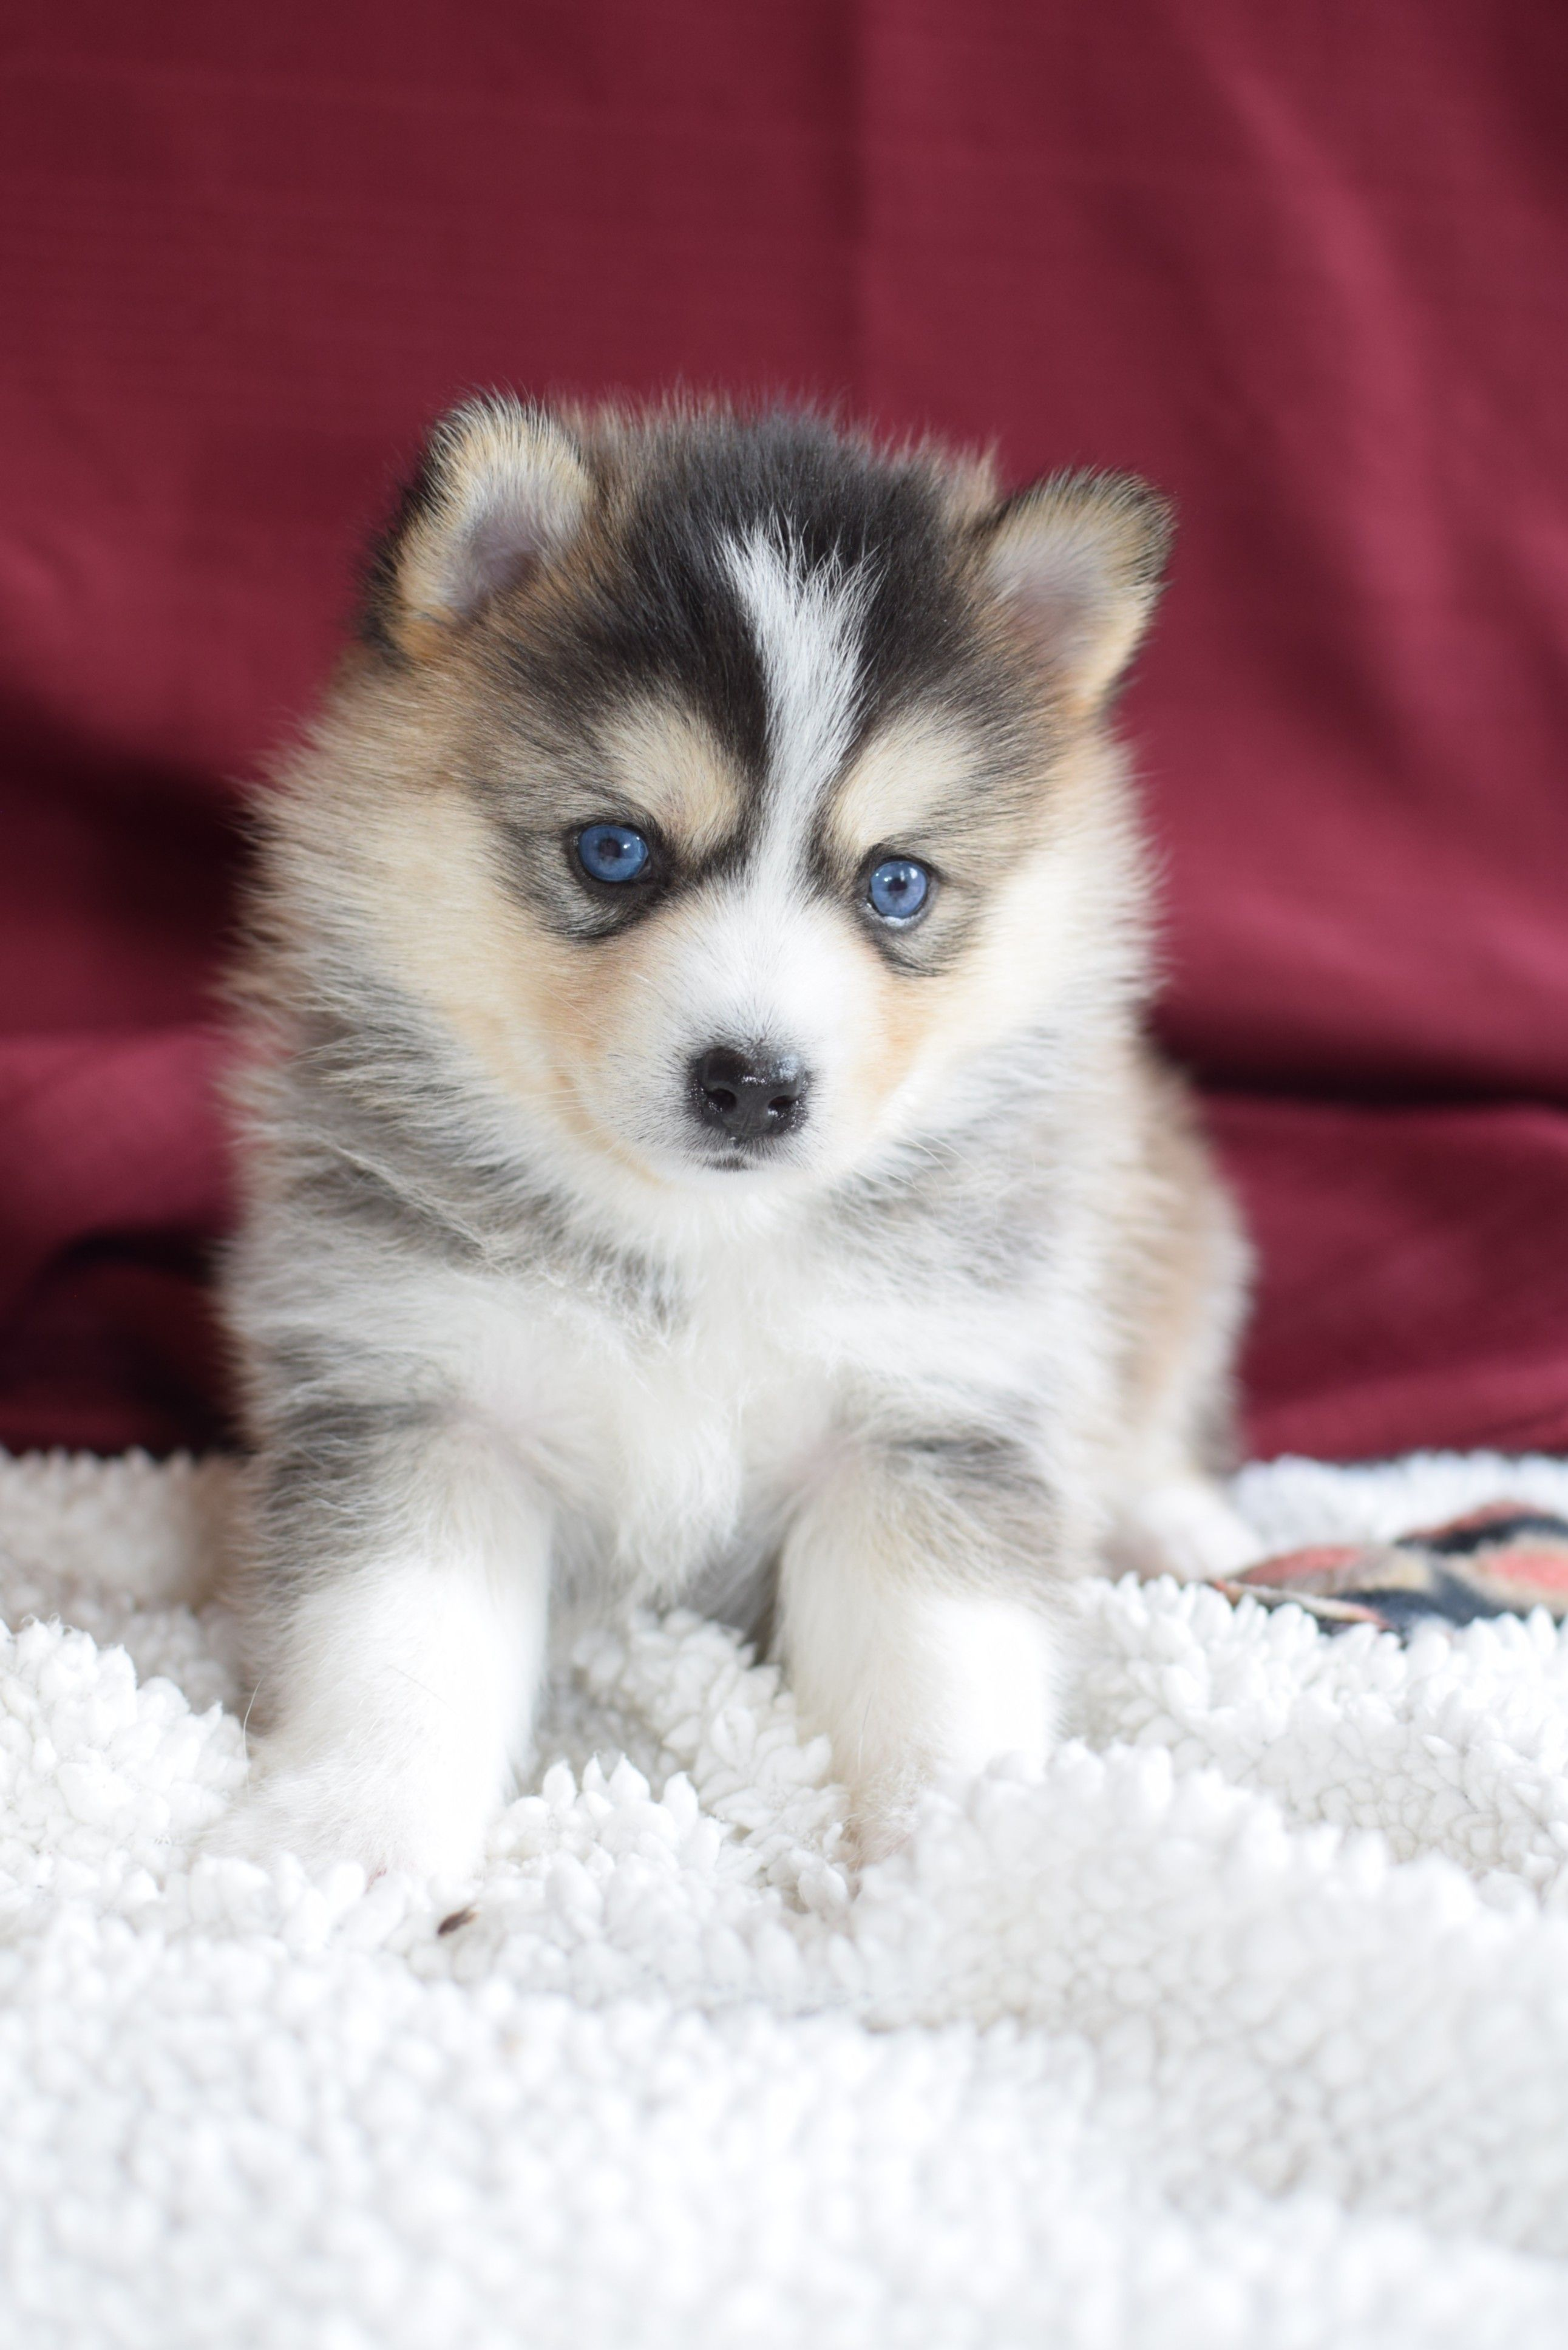 Pomsky Puppies For Sale Pomsky Puppies Pomsky Dog Puppies